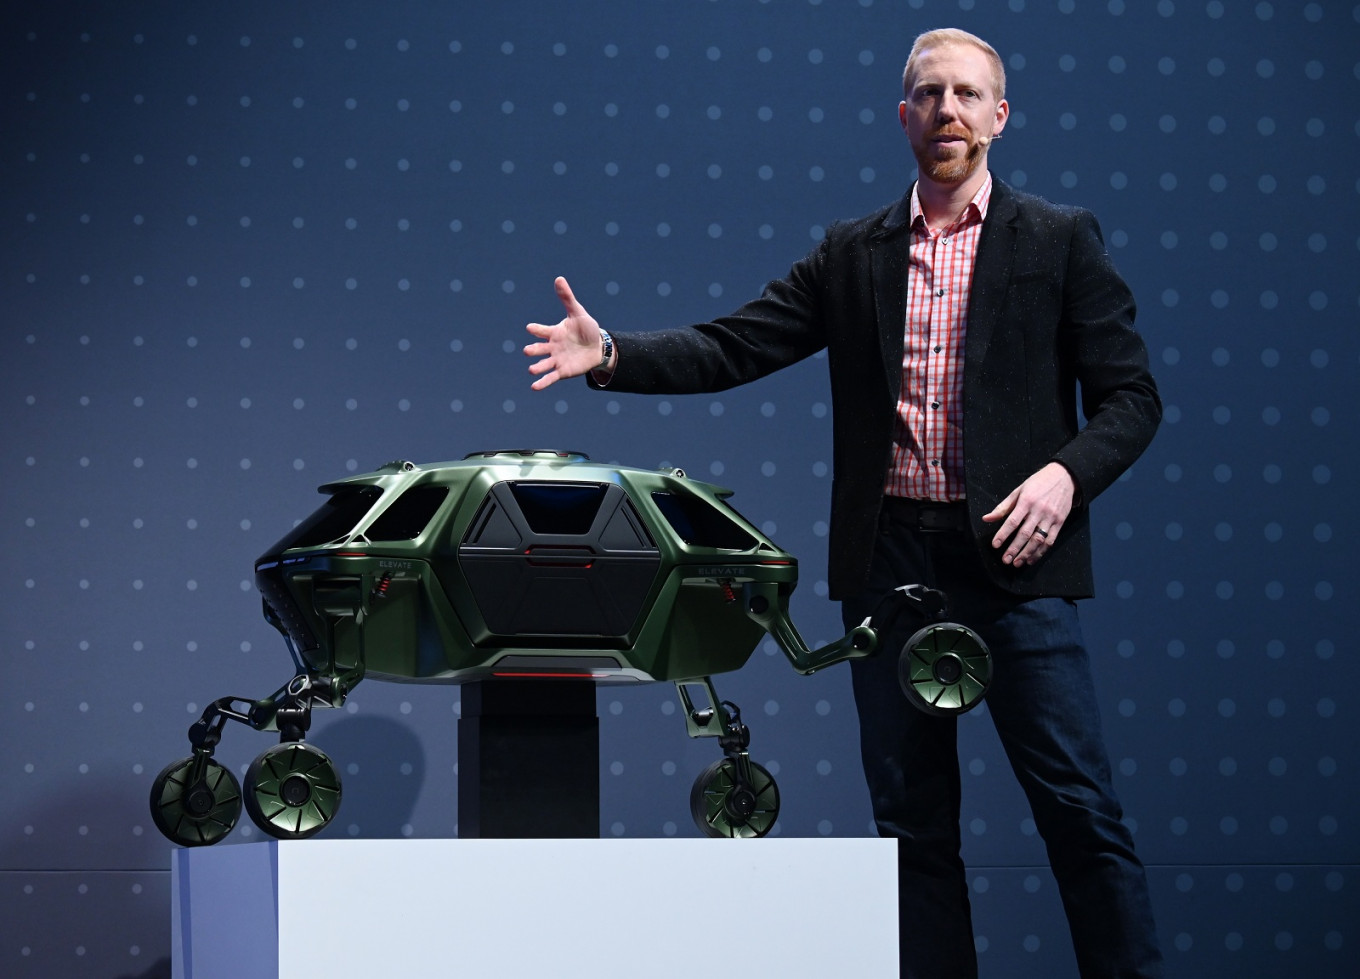 Hyundai shows off walking car project